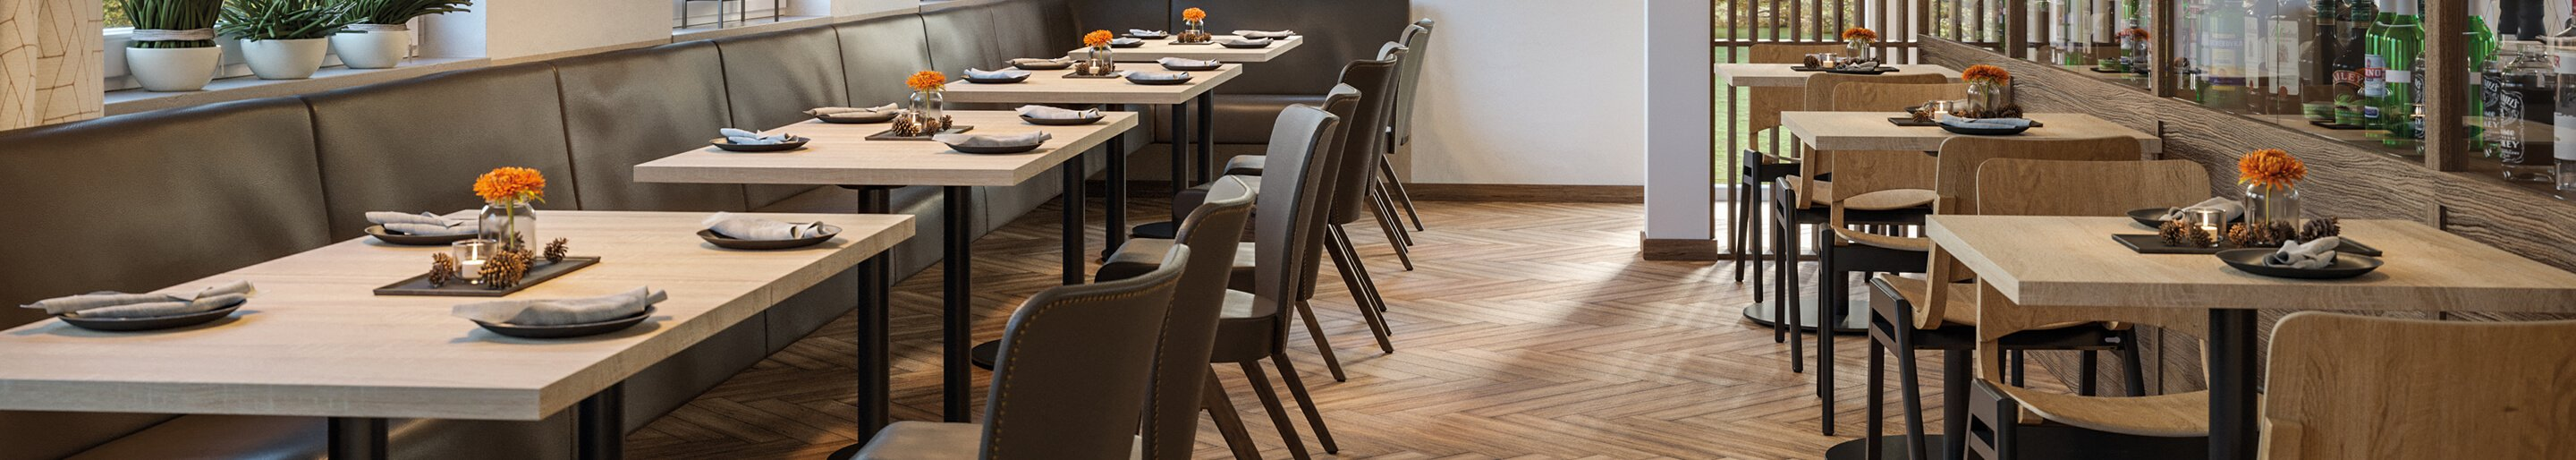 Indoor Dining tables for your restaurant or hotel